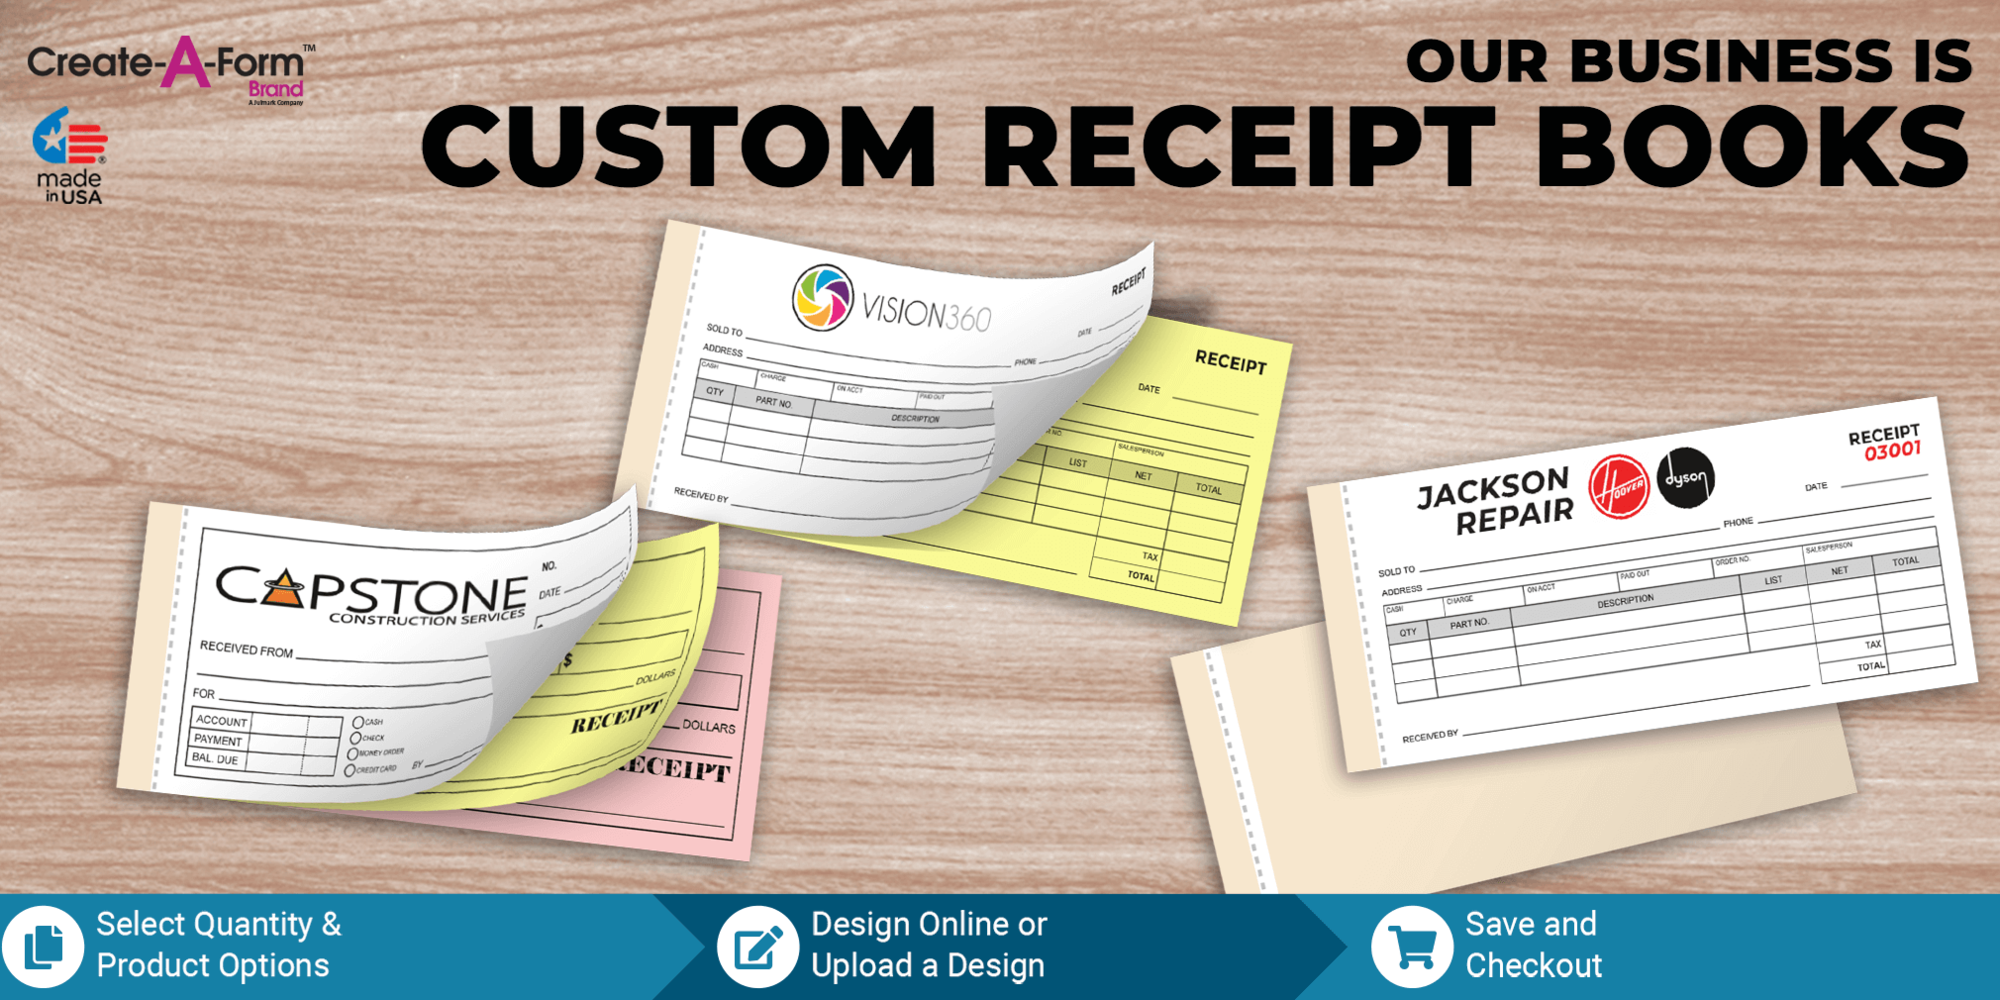 https://printpps.com/images/products_gallery_images/Banner_3_66x8_5NCR_Receipt_ProdFeat_Cover.png